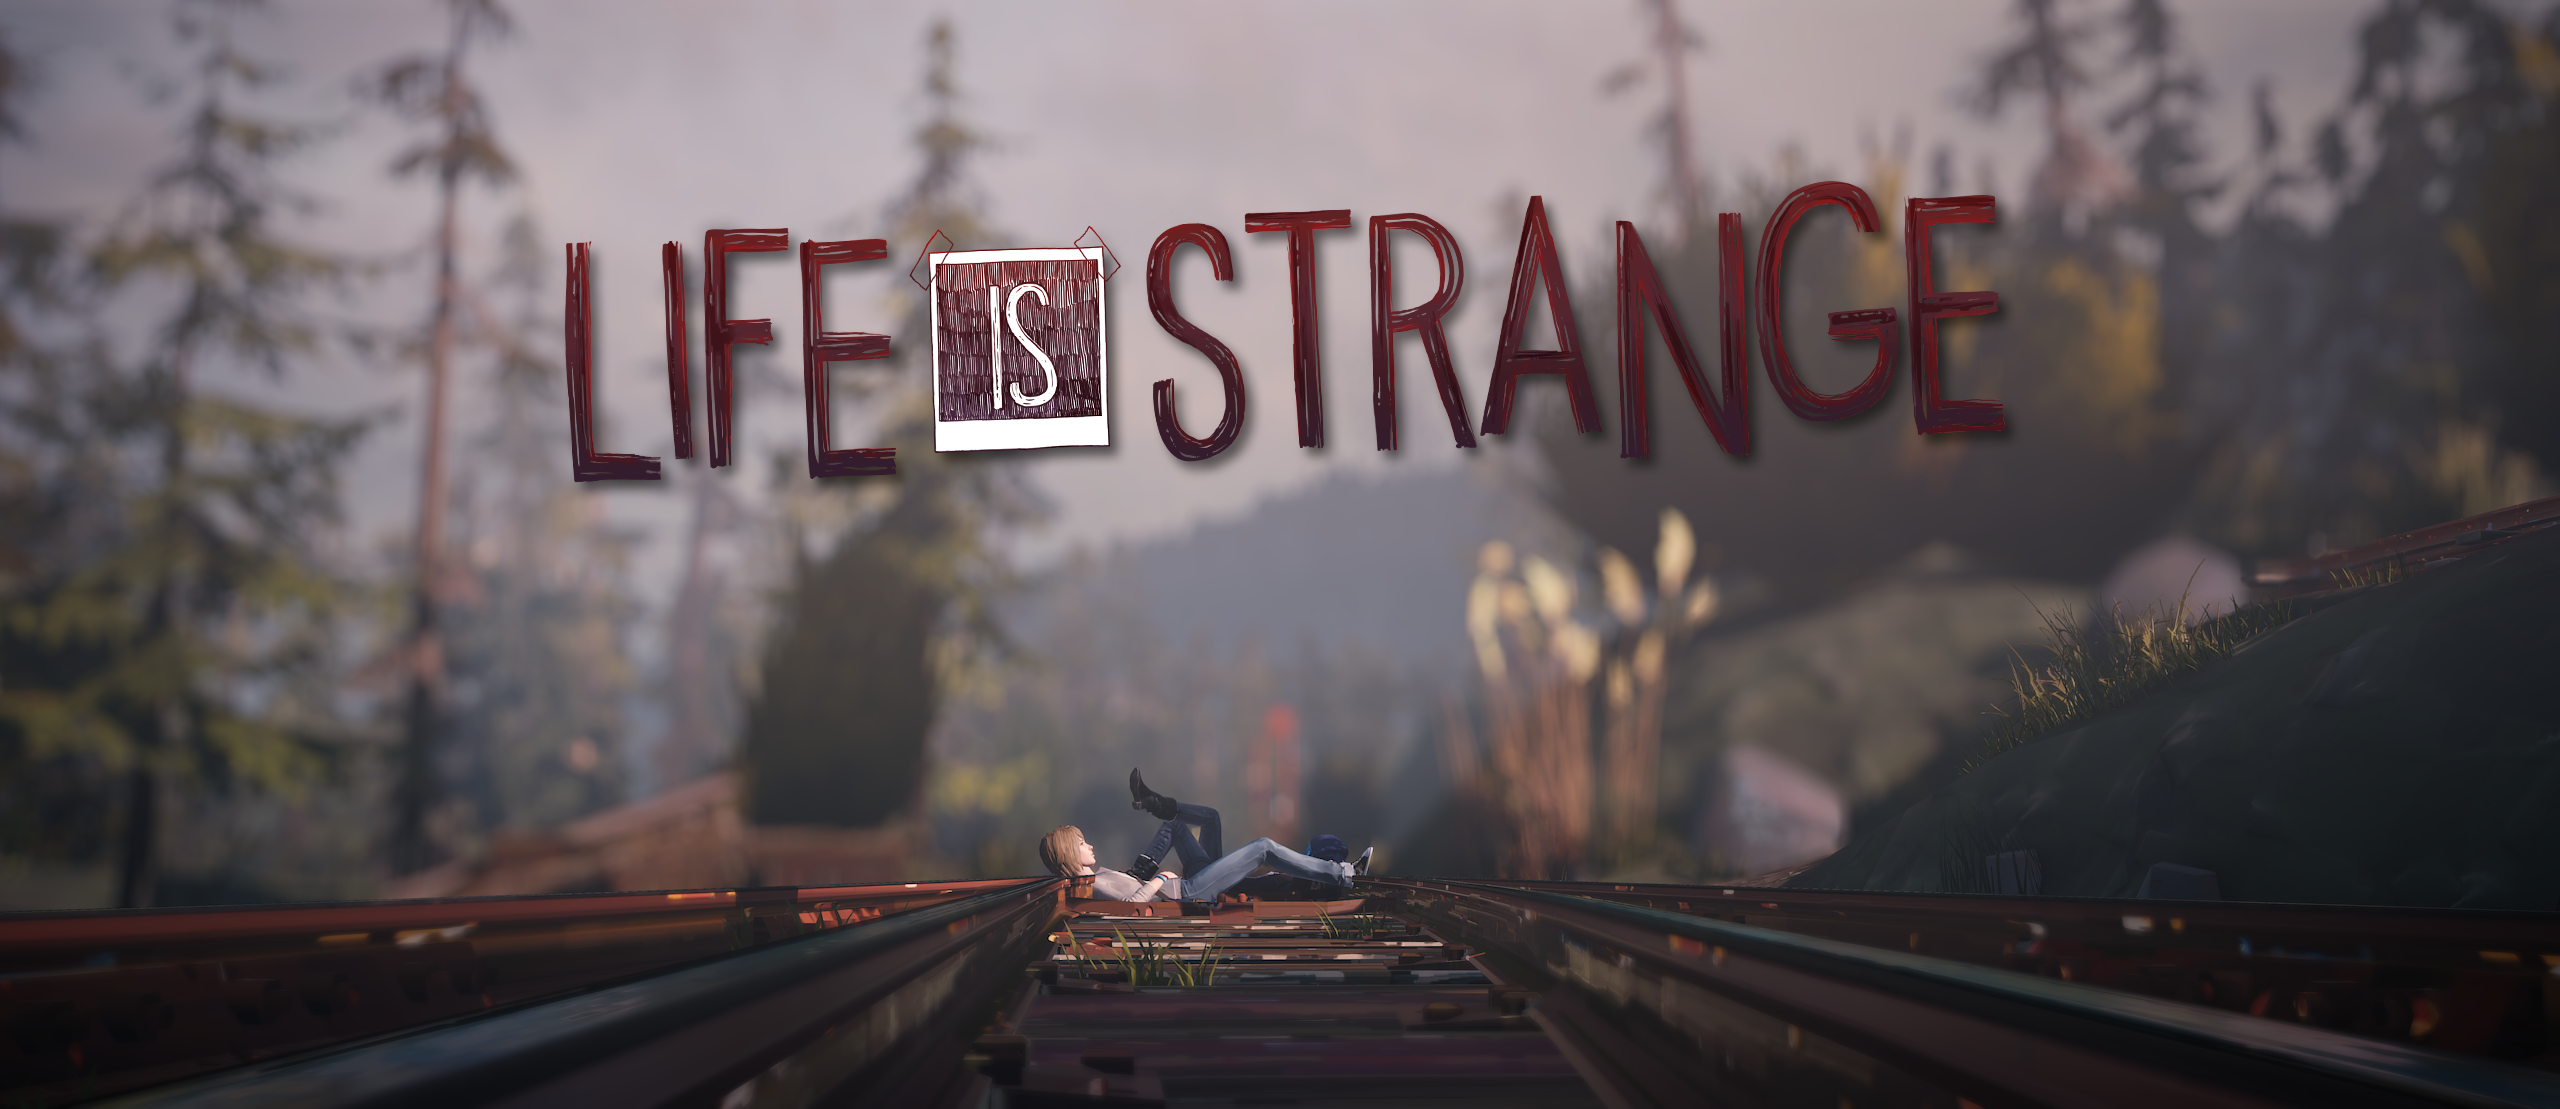 1280x2120 Max Caulfield Life Is Strange Iphone 6 Hd 4k Wallpapers